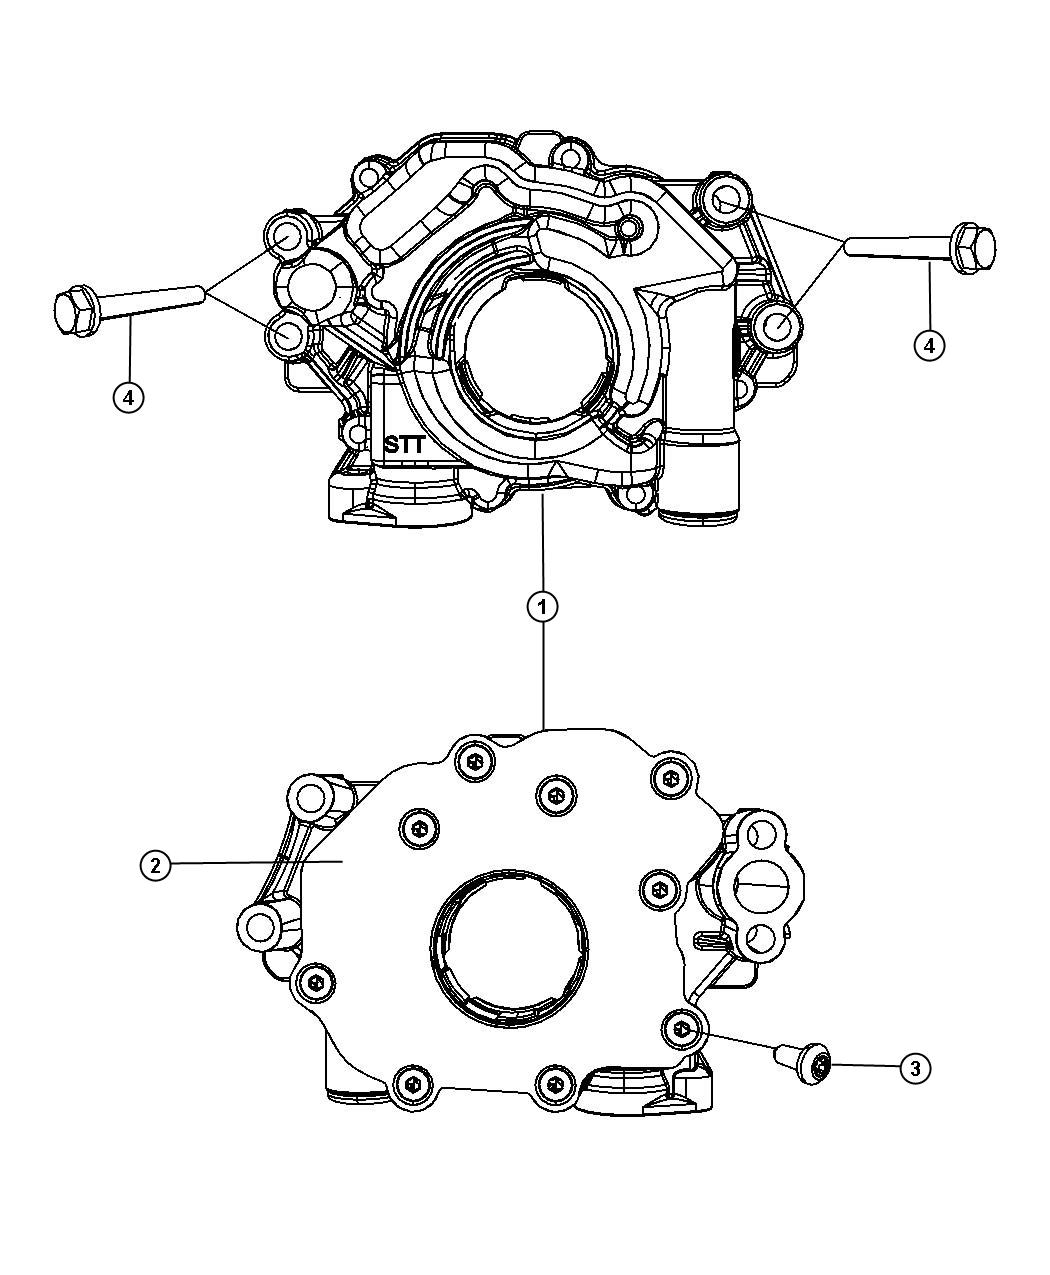 Chrysler Aspen Used For  Bolt And Coned Washer  Hex Head